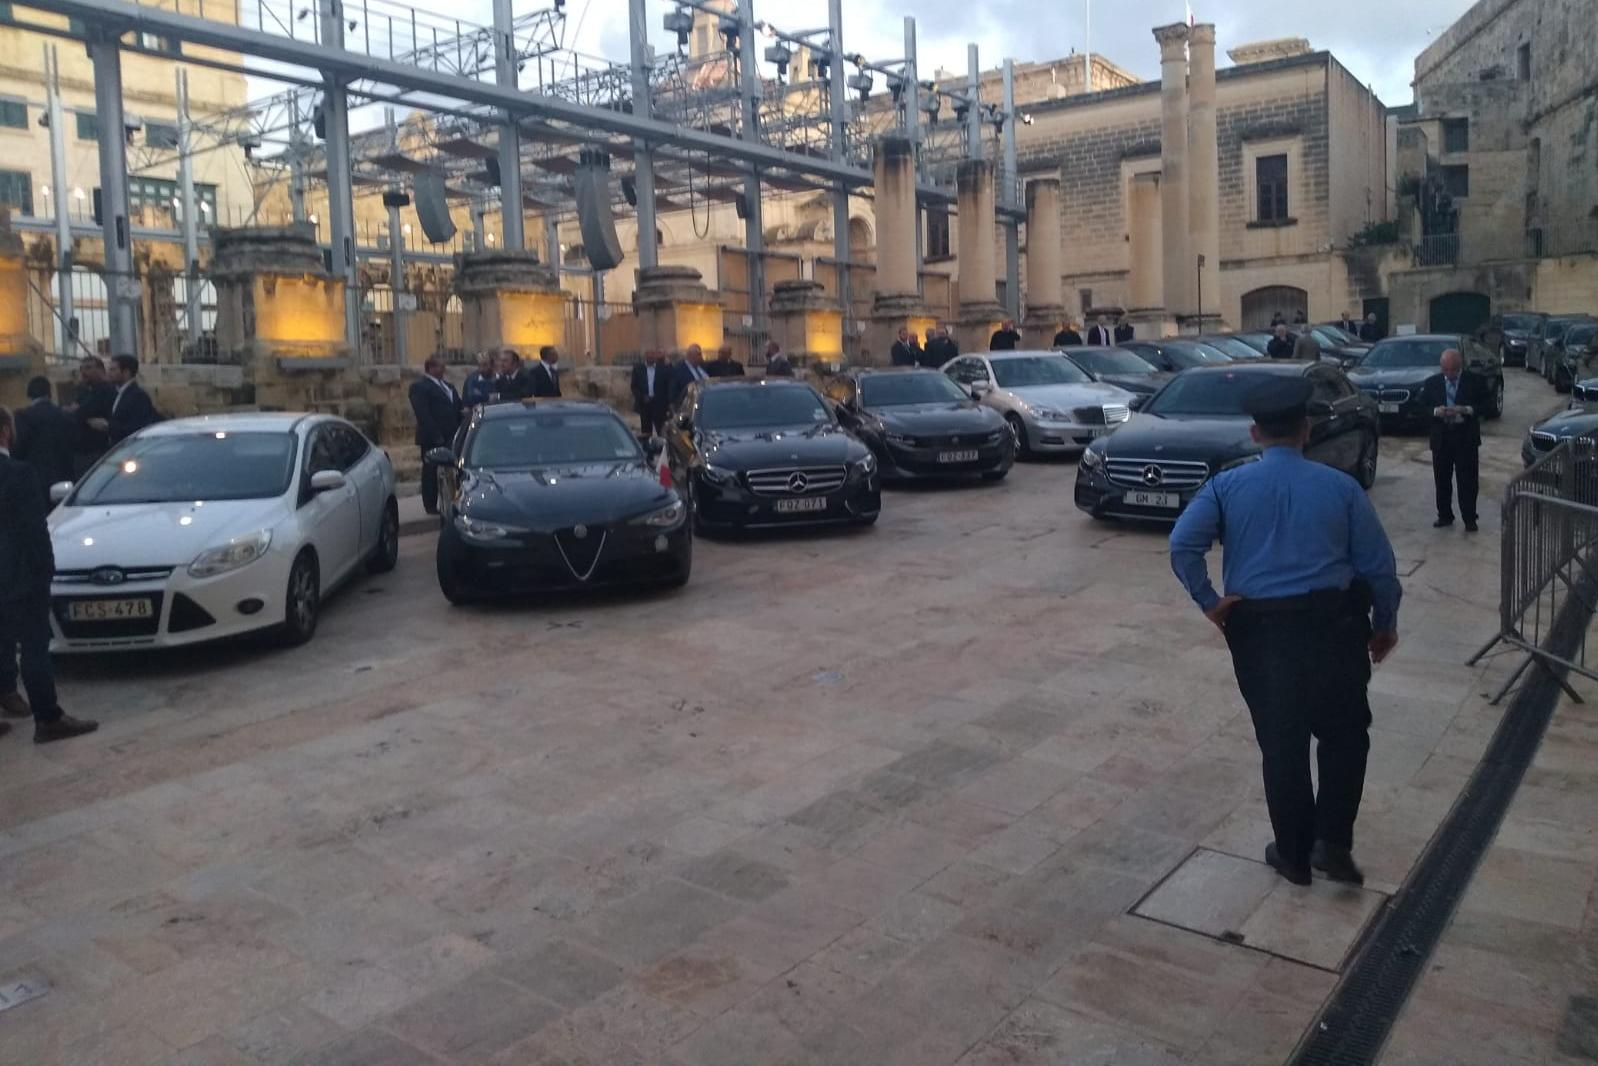 Cars lined up as parliament is in session. Photo: Jacob Borg